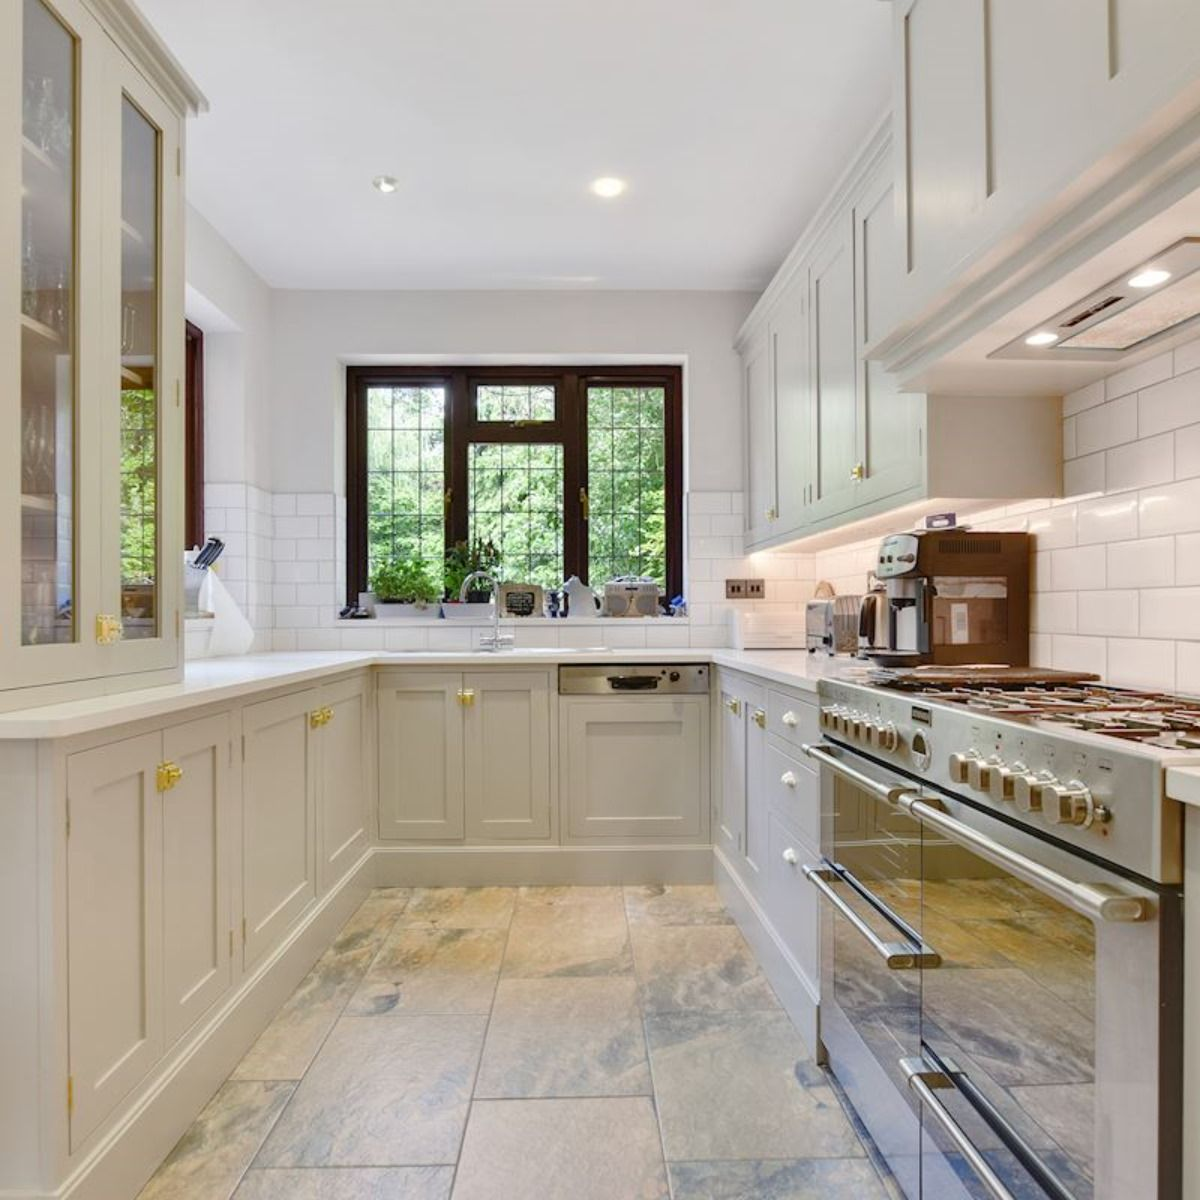 The entire downstairs of this 5-bedroom house was flooded in June 2016 after torrential downpours caused the River Pinn to burst its banks. We were engaged to bring the house back to its former glory and beyond by reinstating and remodelling the affected areas, including building a fully bespoke, handcrafted kitchen. #insurancerepairs #flooddamage #insurance